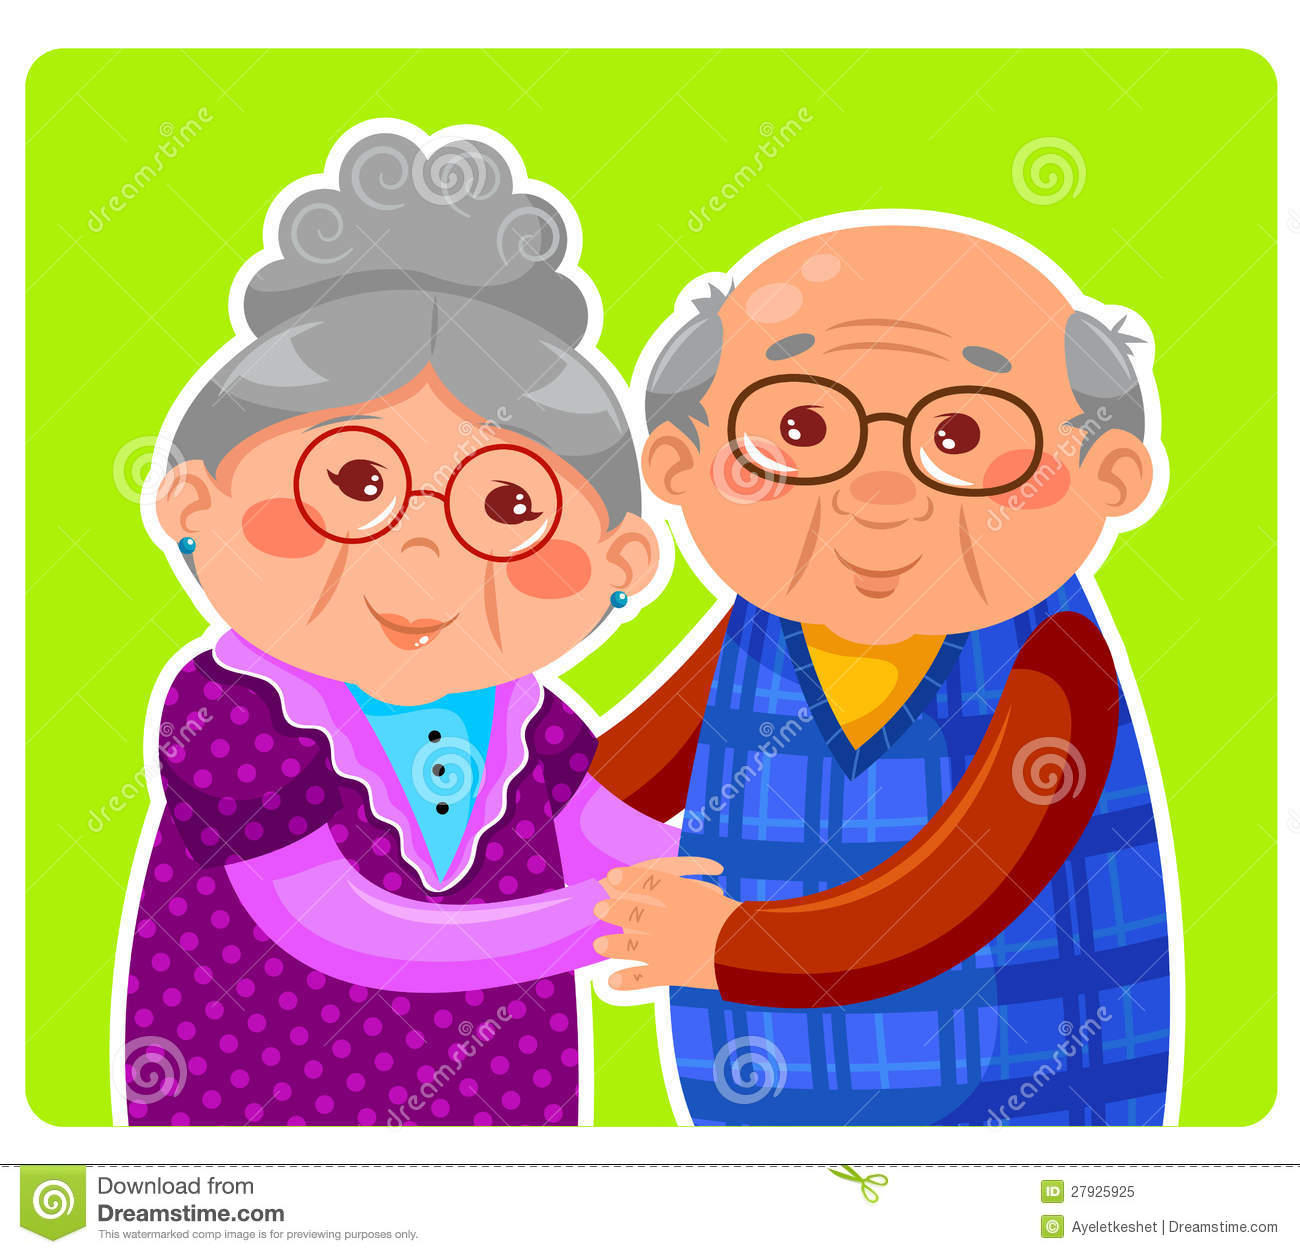 Old Couple Royalty Free Stock Photo - Image: 27925925